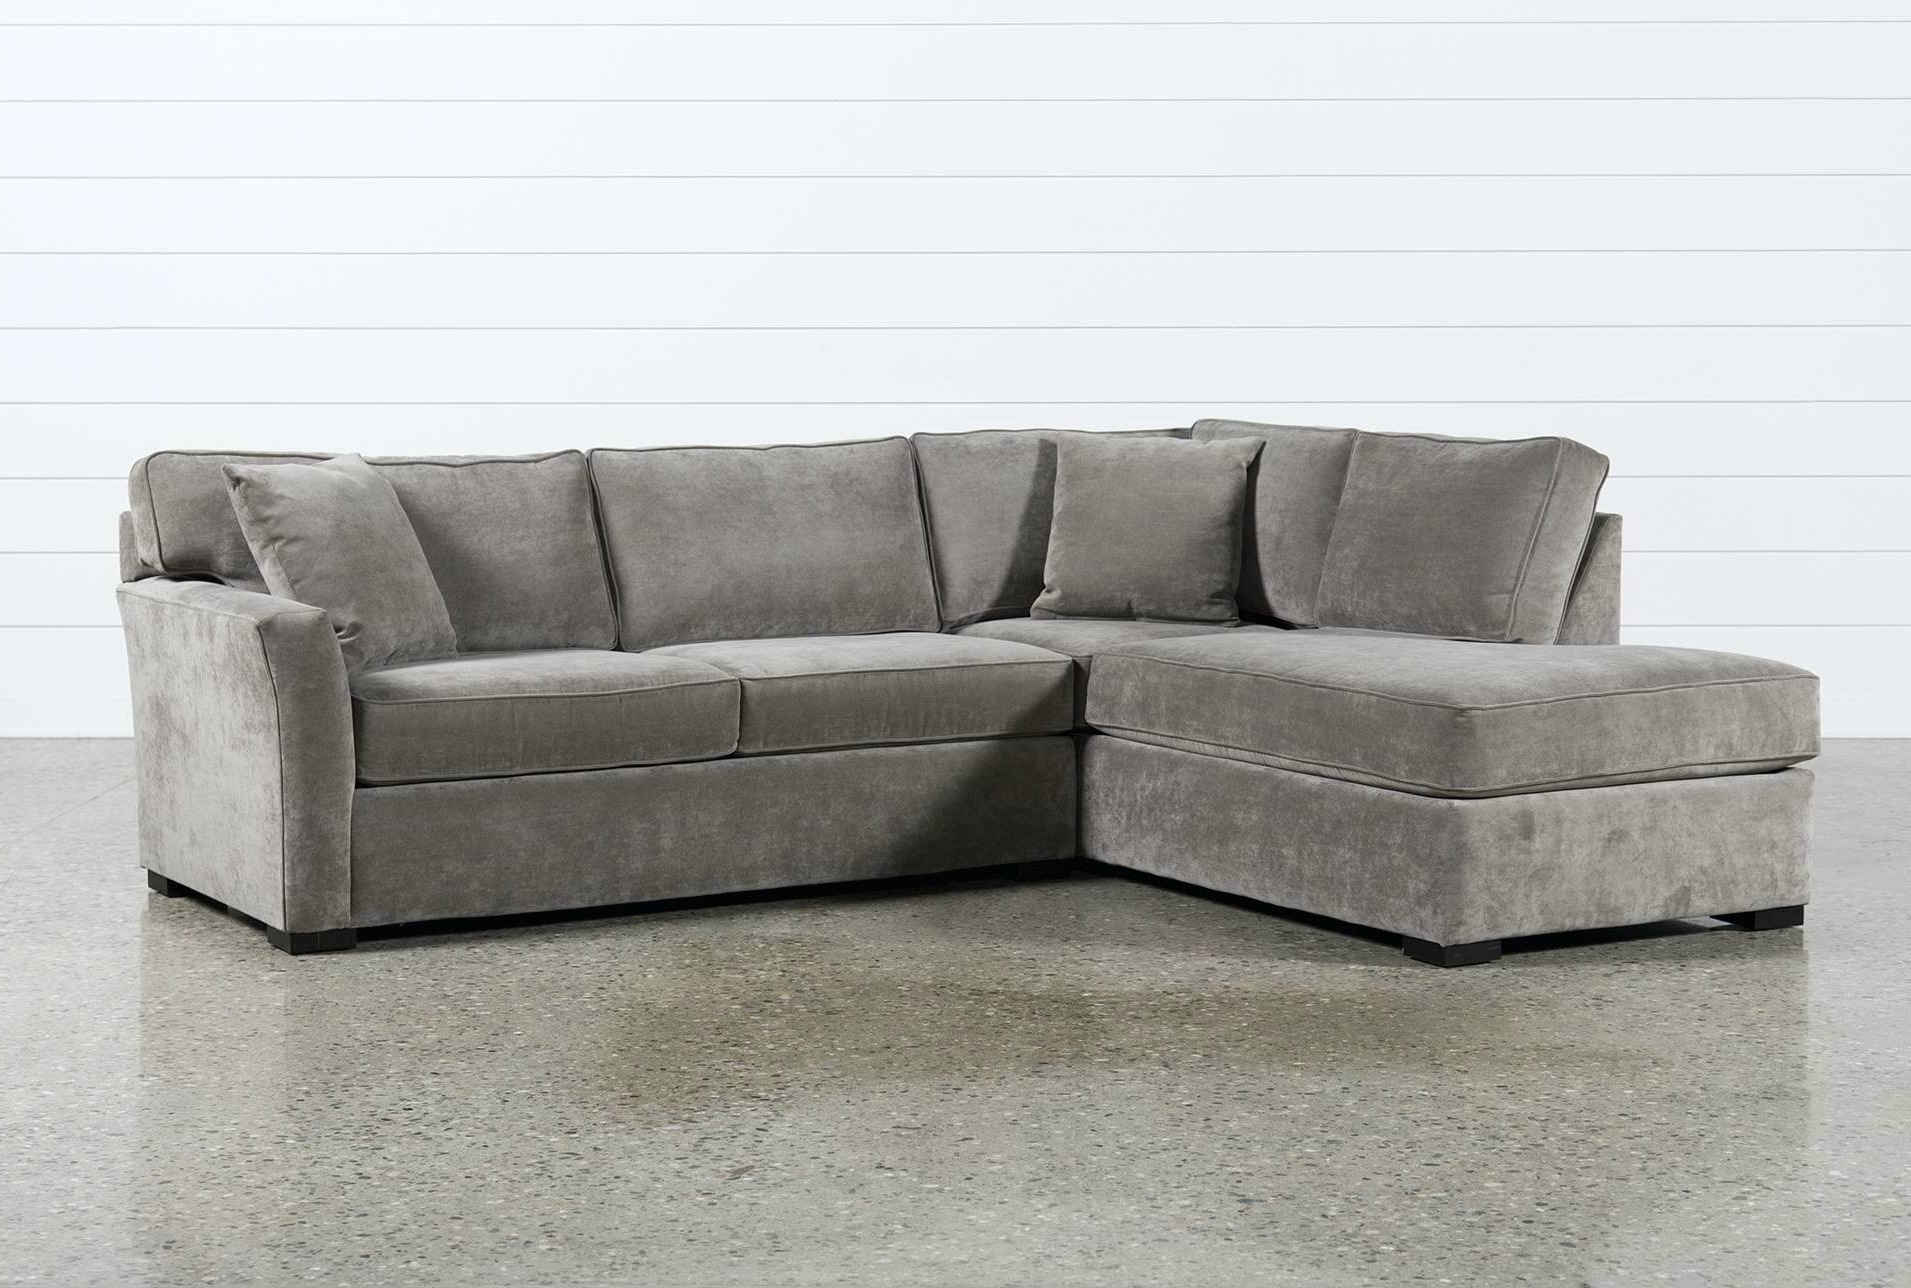 Nashville Sectional Sofas Within Most Recently Released Sleep Sofas Sleeper Sectional Rooms To Go Sofa For Sale In (View 10 of 20)